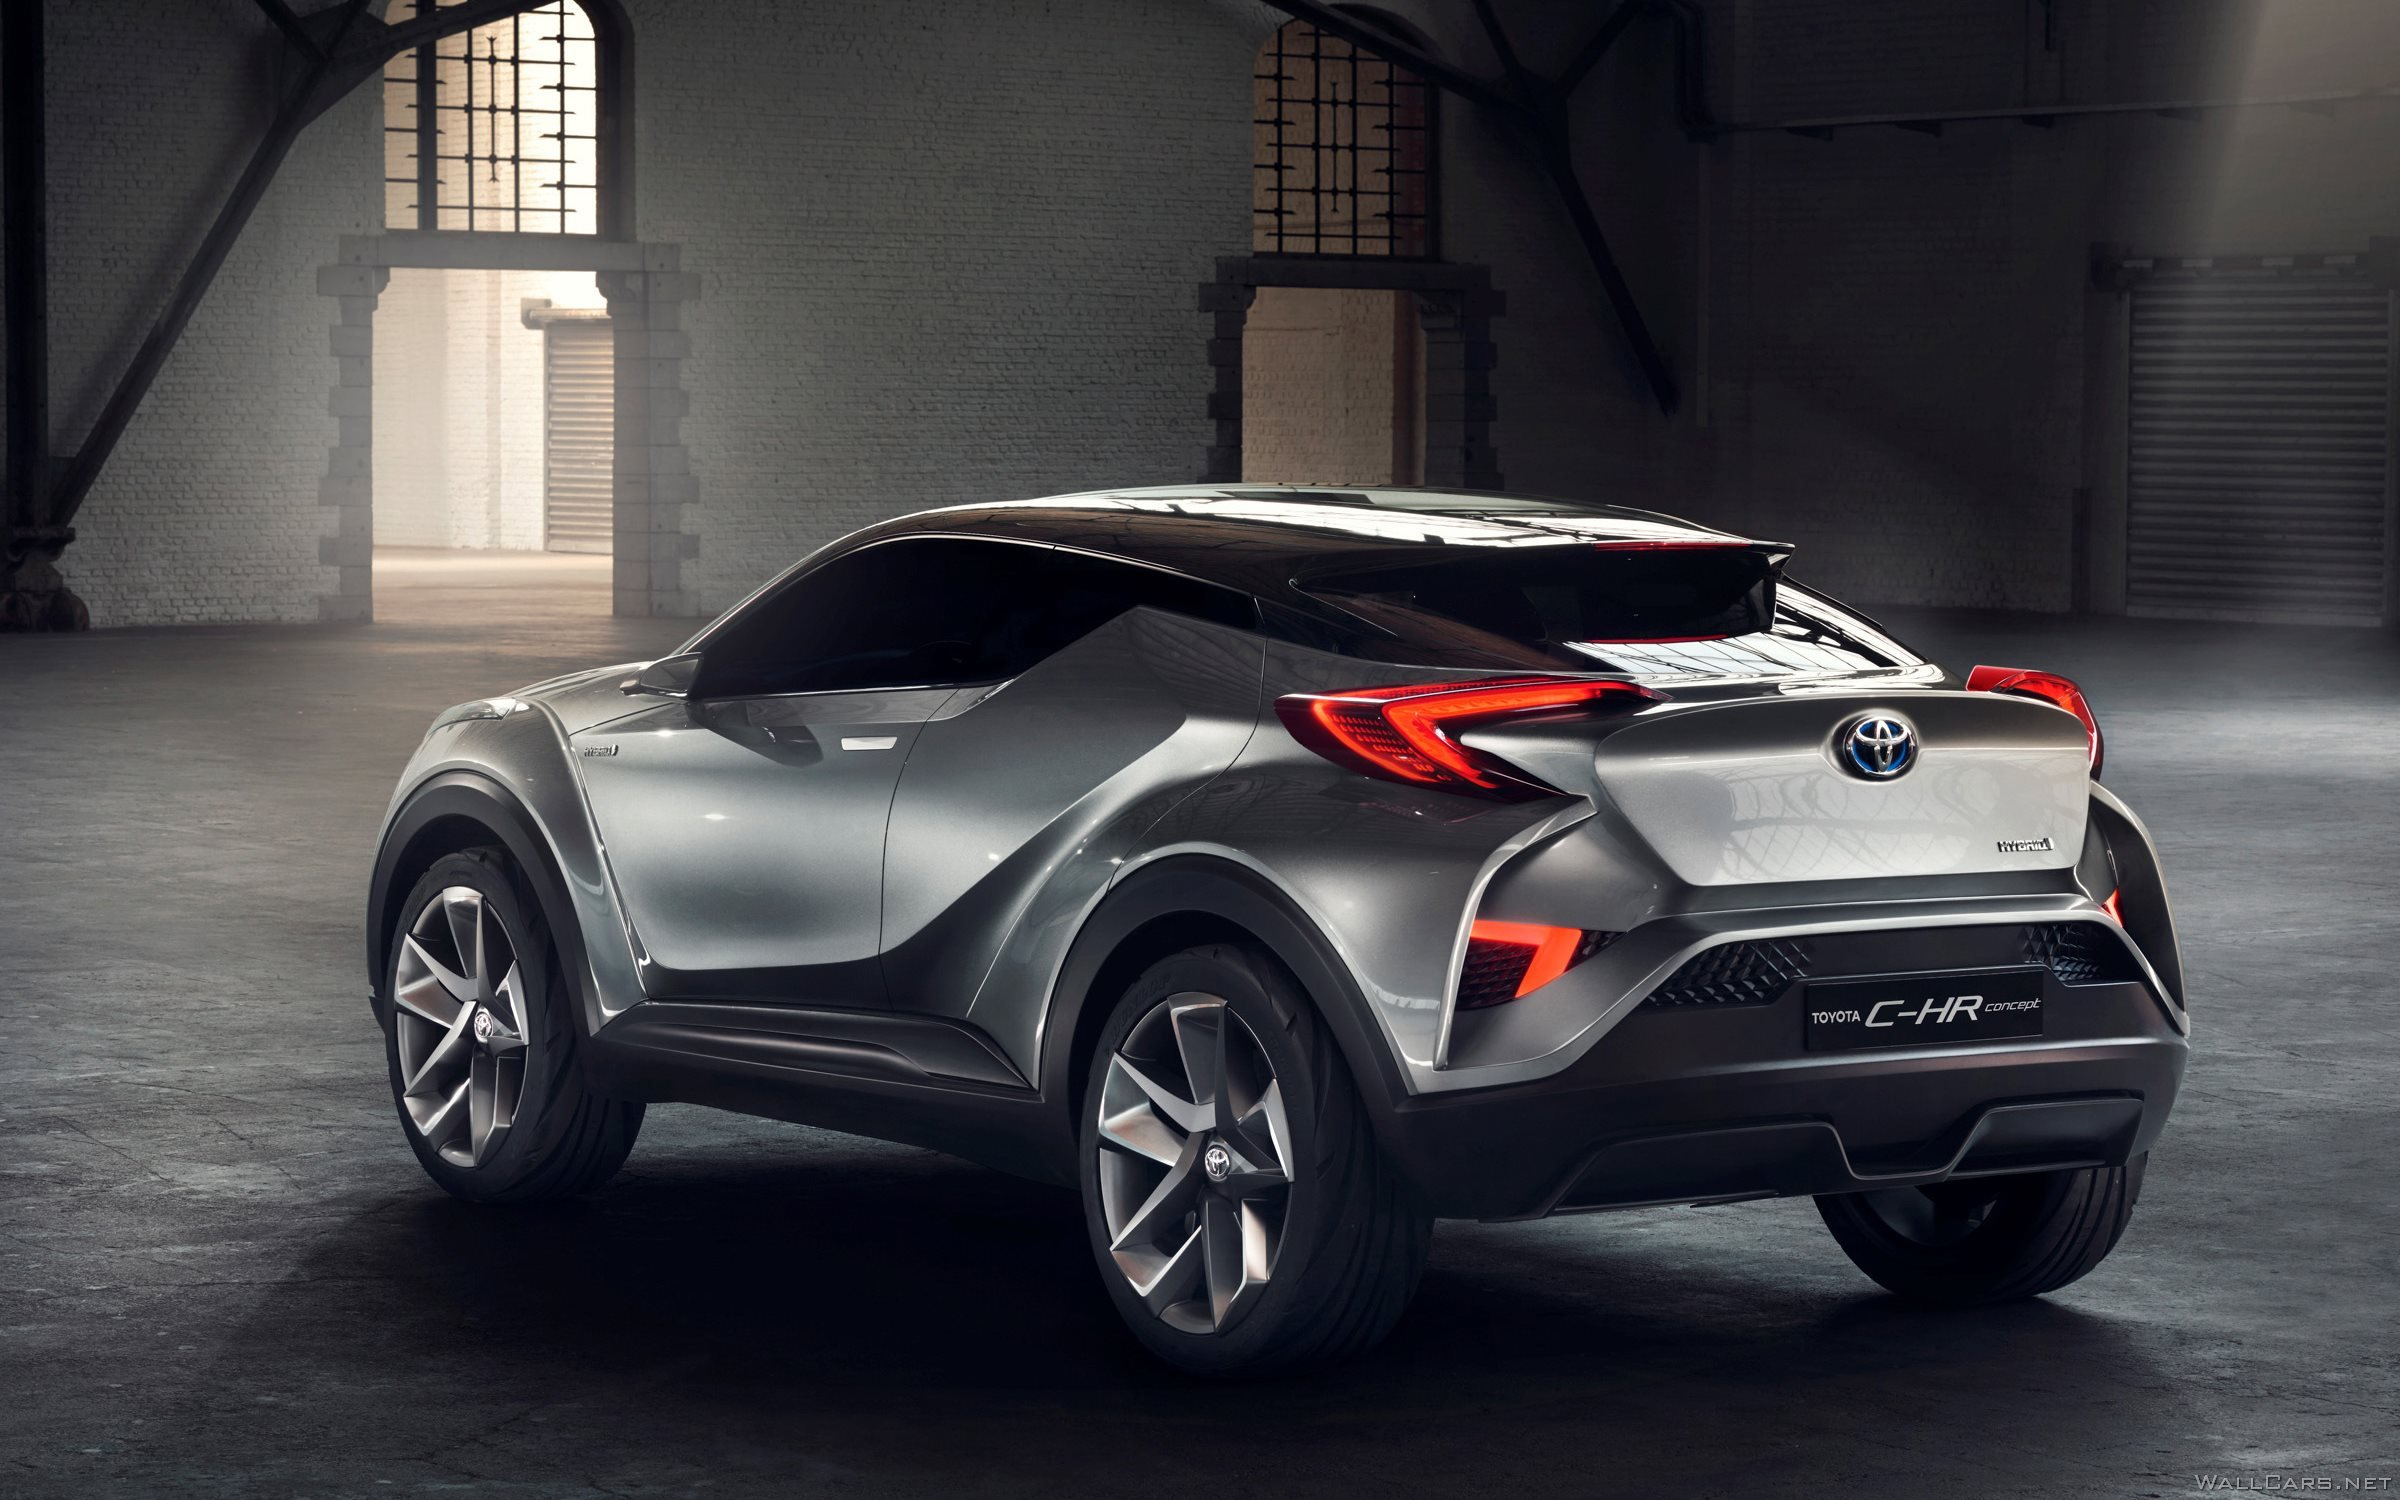 Rear lights of Toyota C-HR Concept, 2015, logo, new, back, silver, lines, design